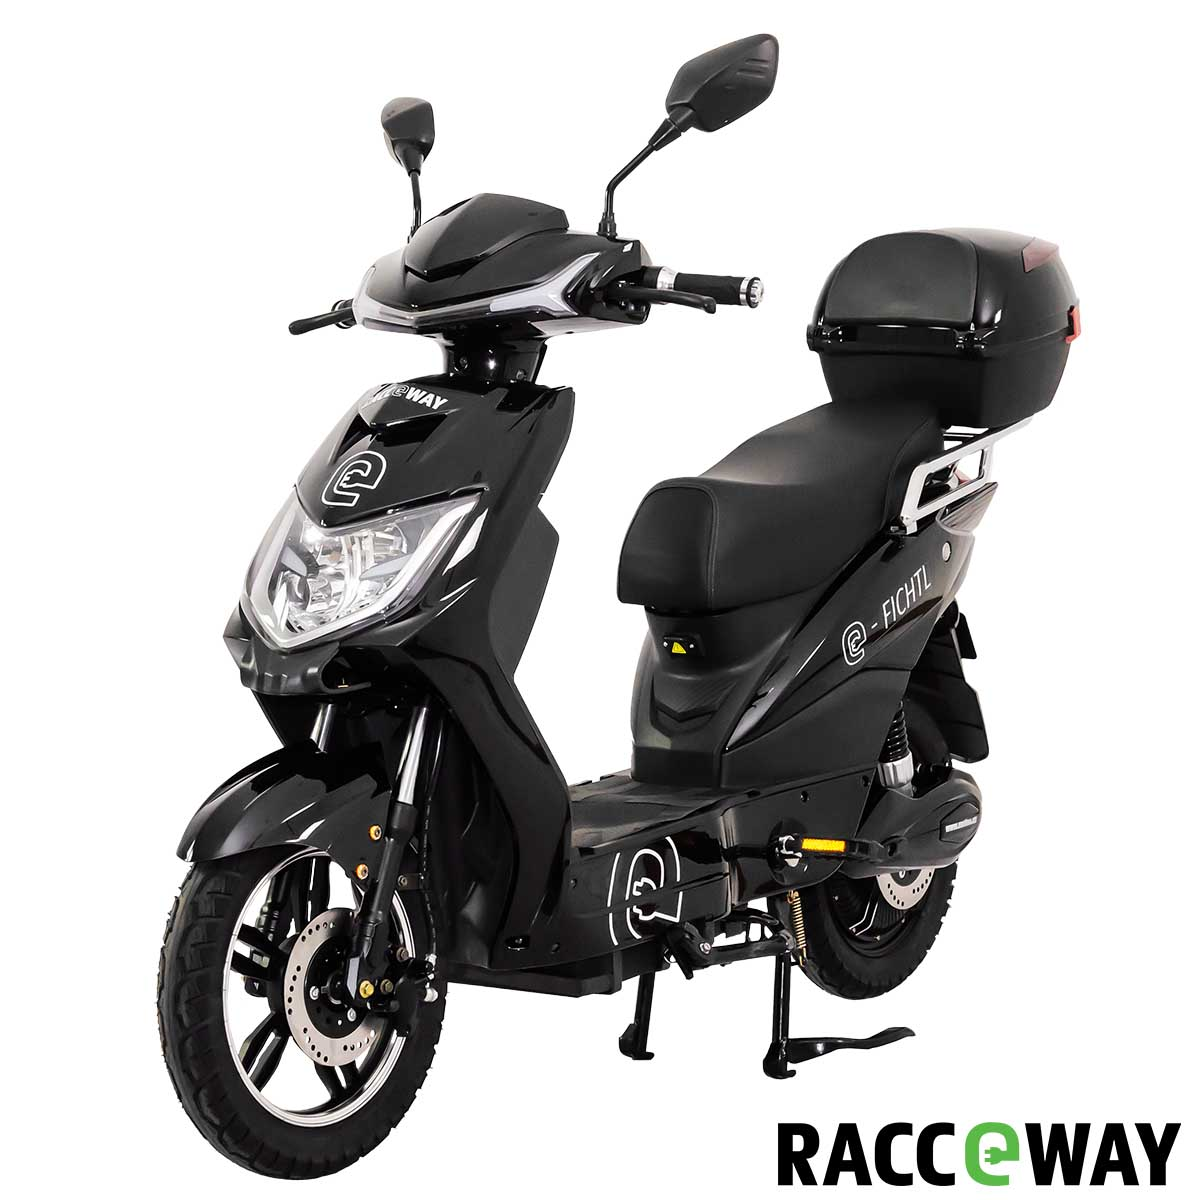 https://www.motoe.sk/inshop/catalogue/products/pictures/motoe-1f-02_a3.jpg?timestamp=20210802062835